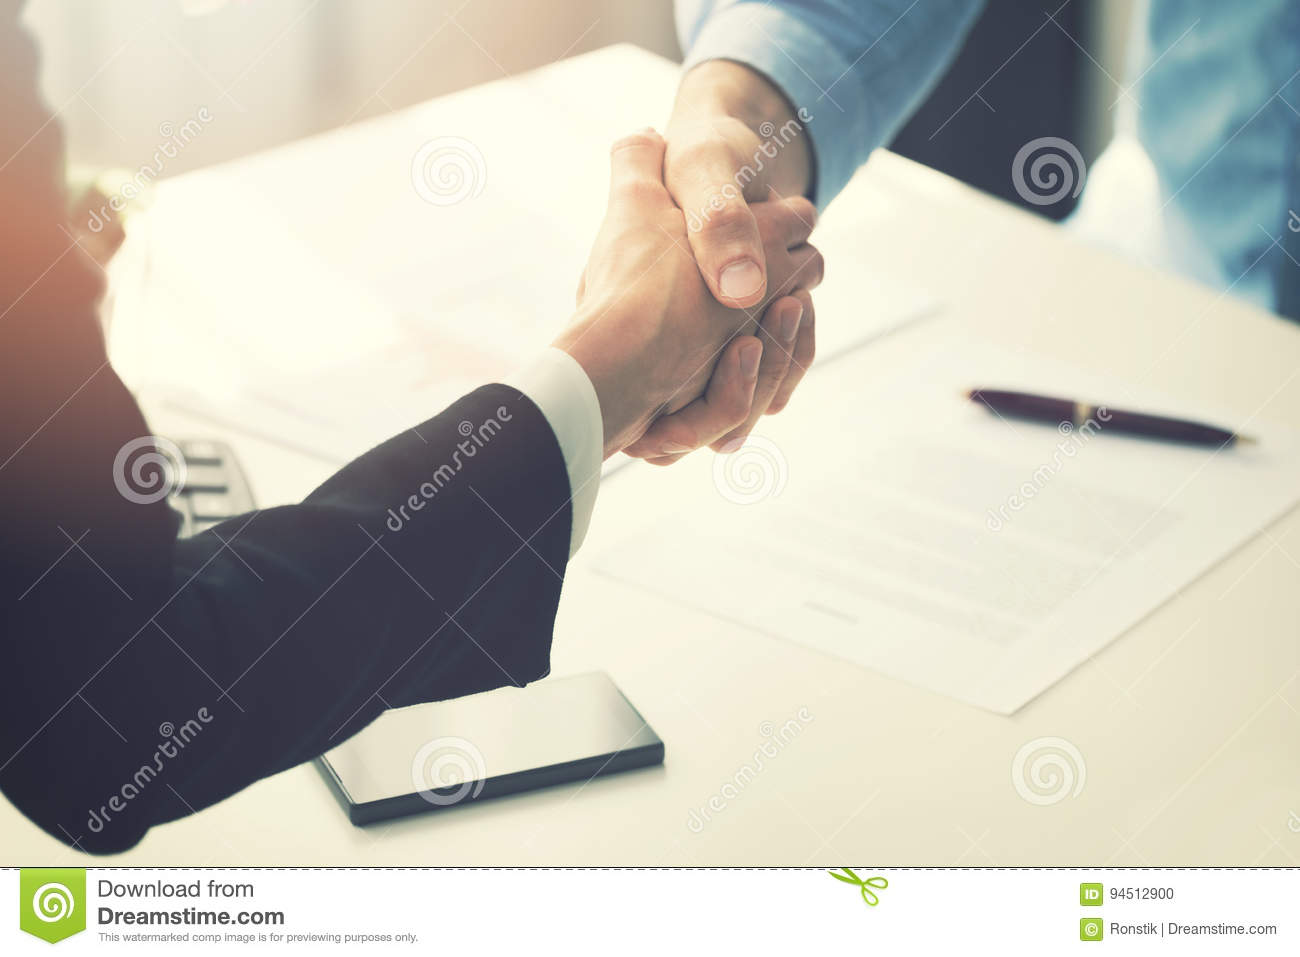 Download Business People Handshake After Partnership Contract Signing Stock Photo - Image of people, closeup: 94512900